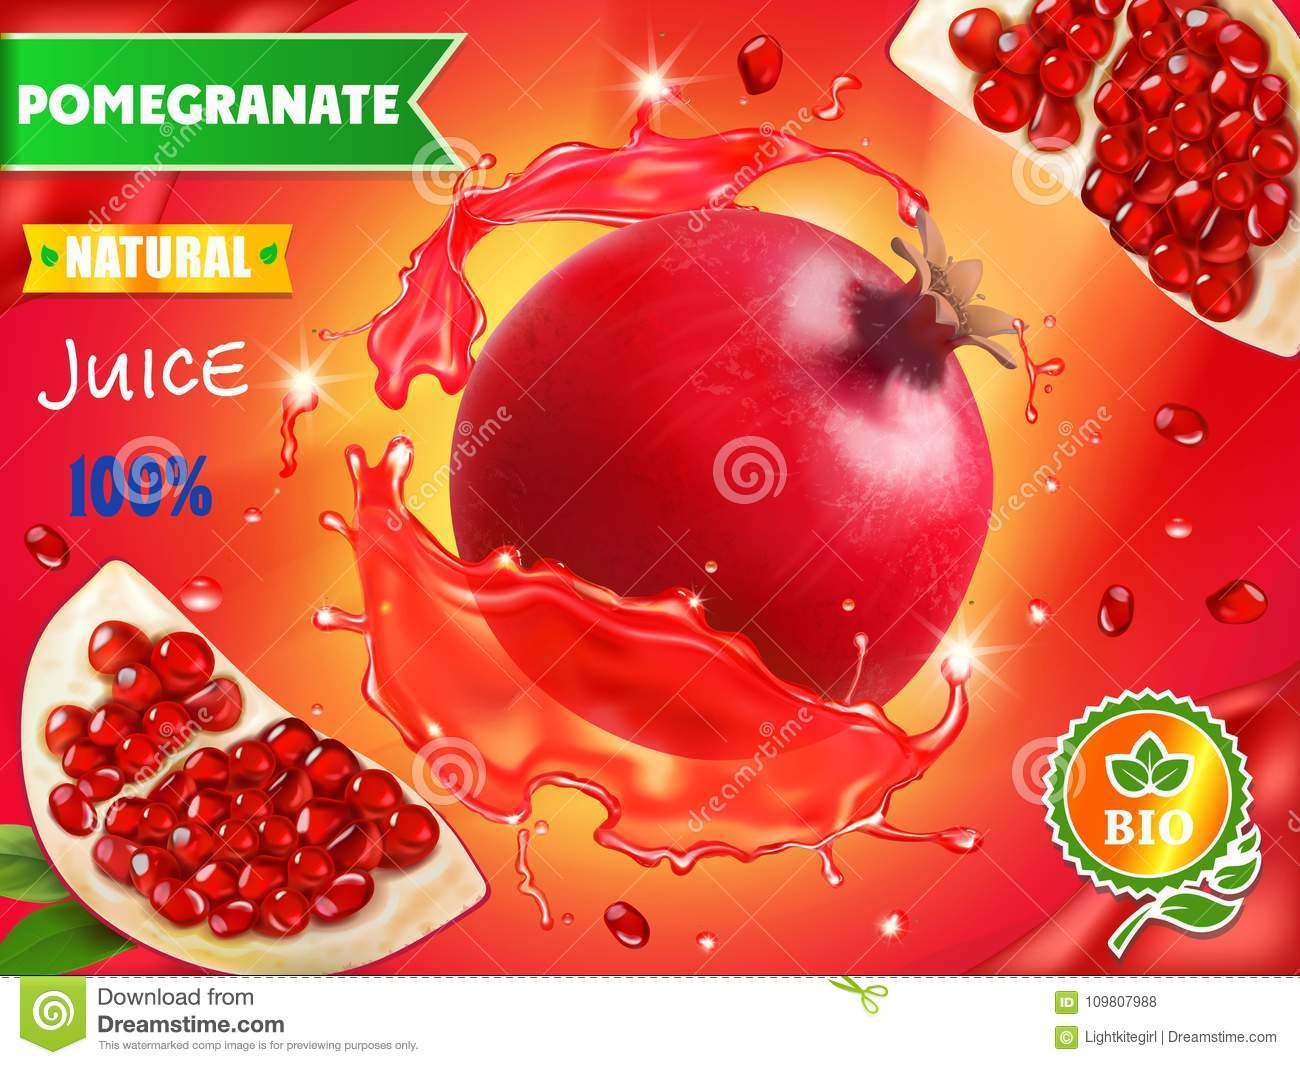 Pomegranate juice ads, realistic fruit in red juice advertising